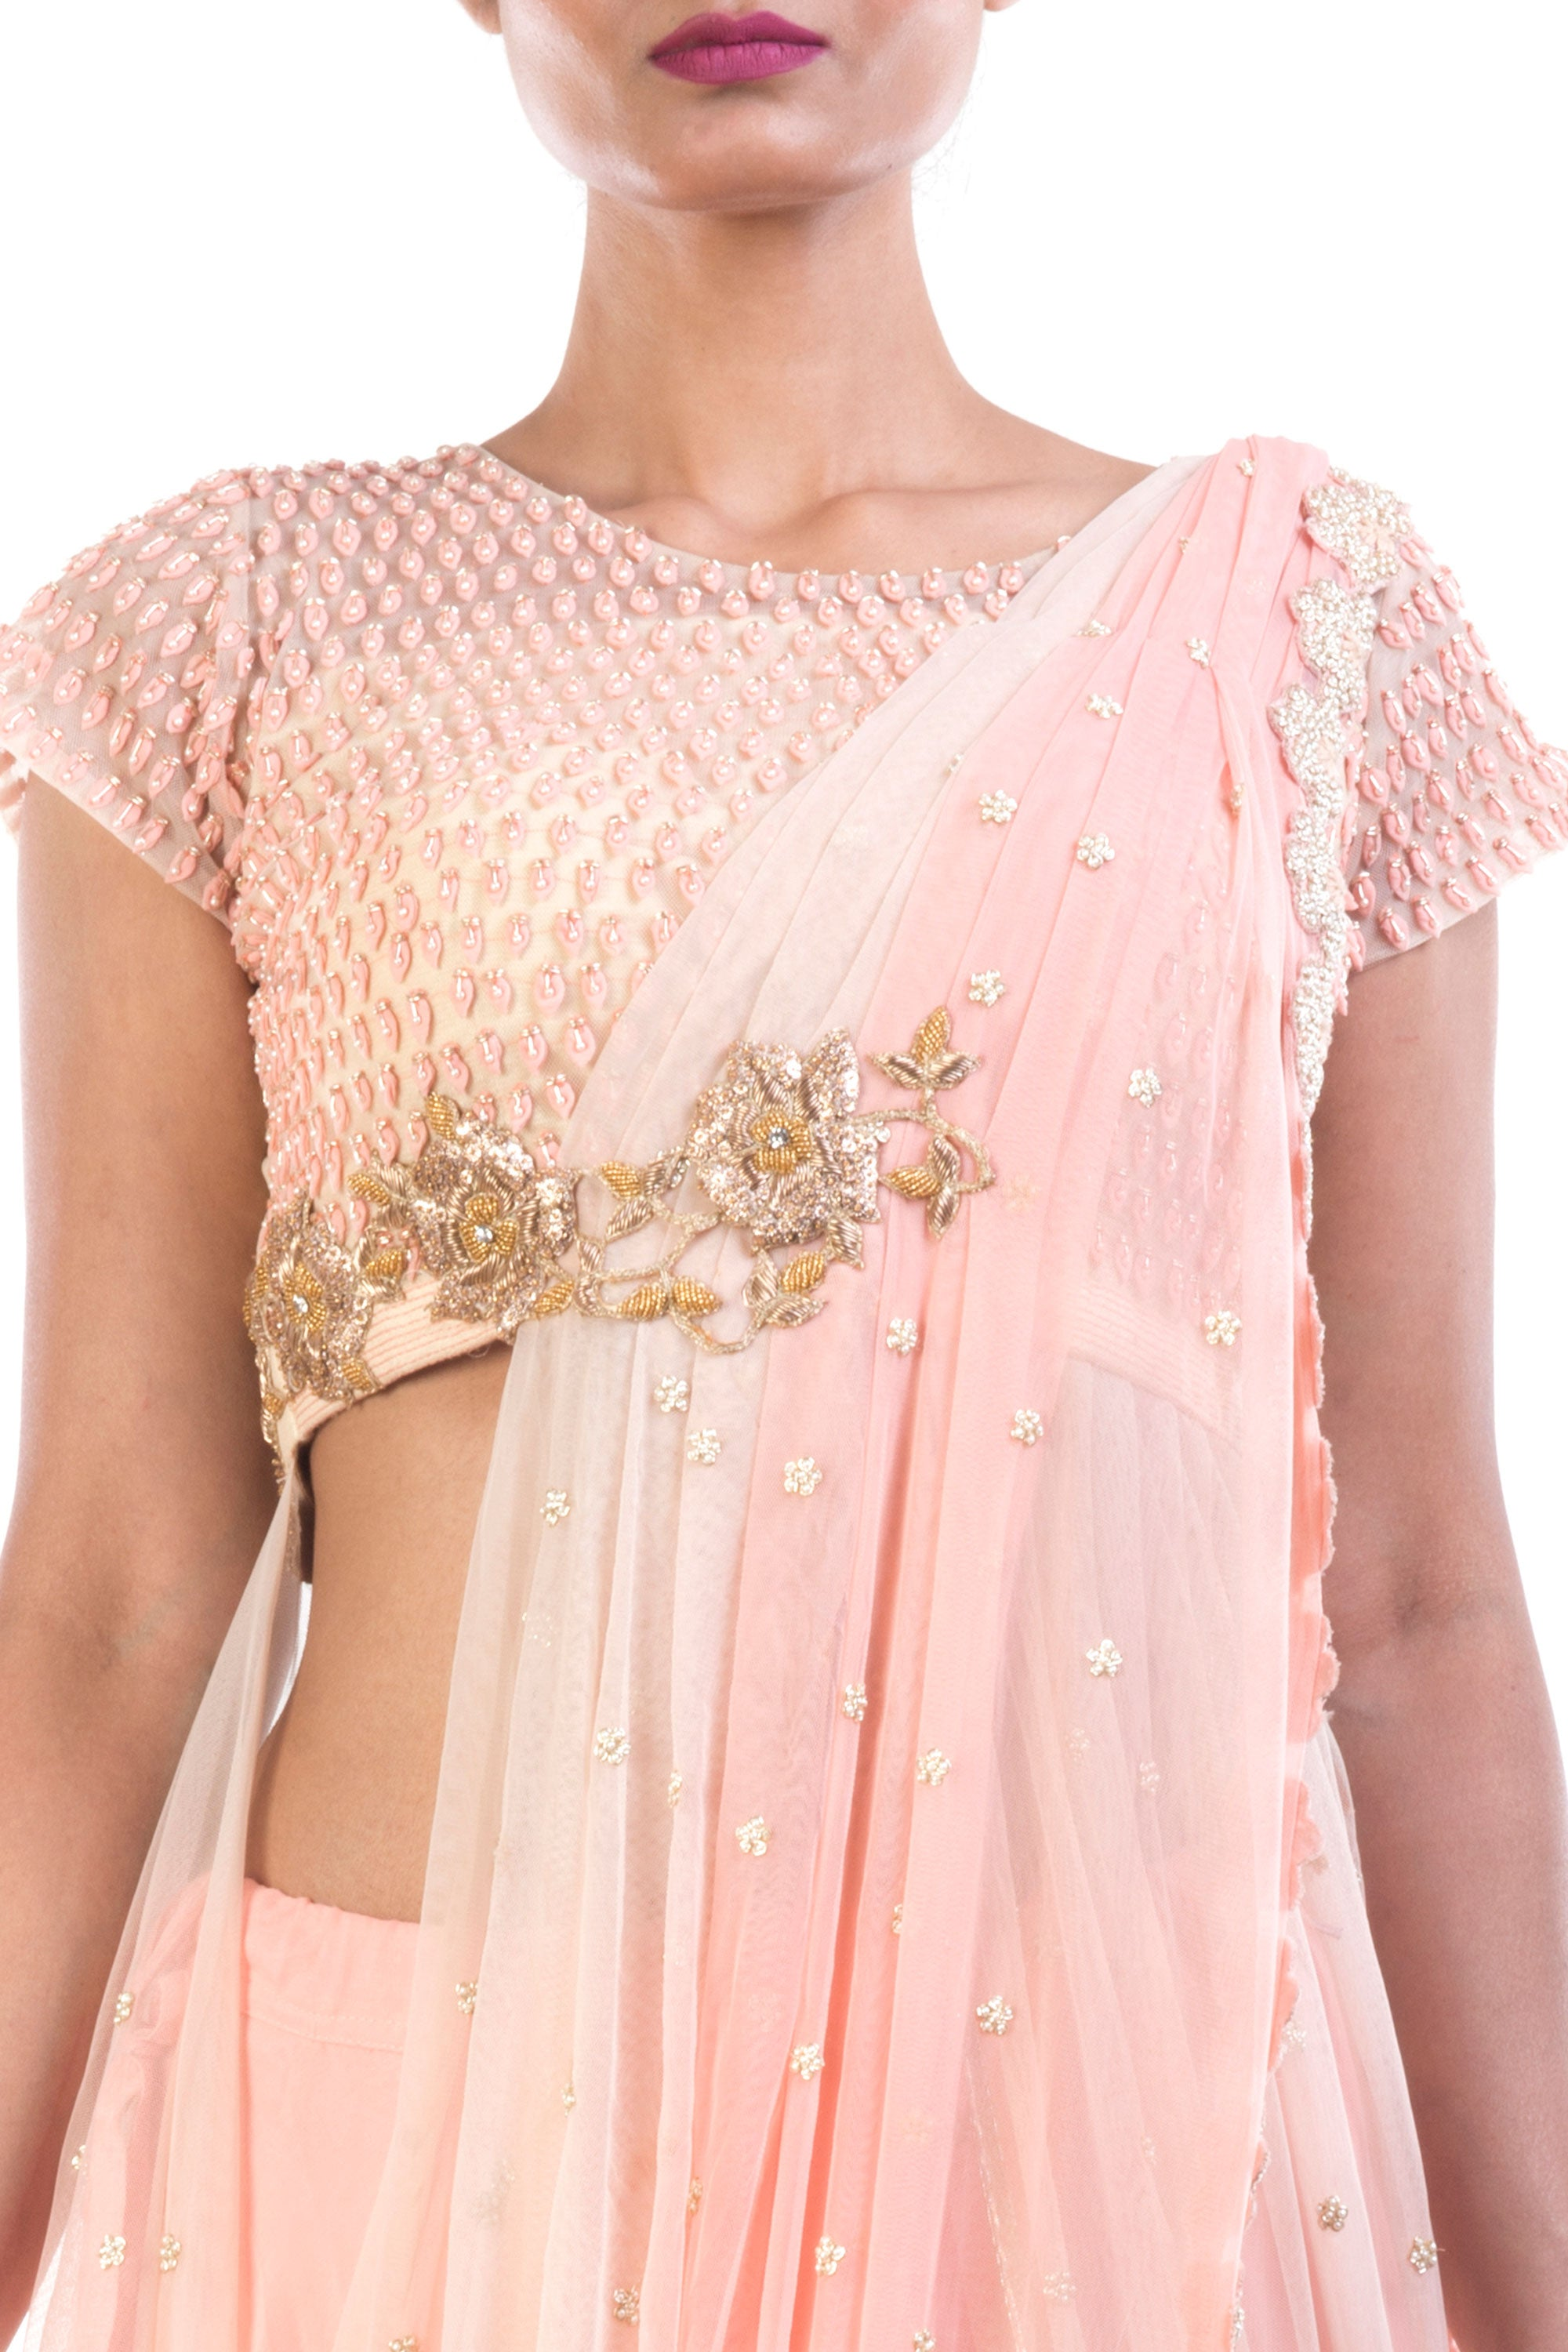 Bisque Lehenga With Attached Dupatta Closeup